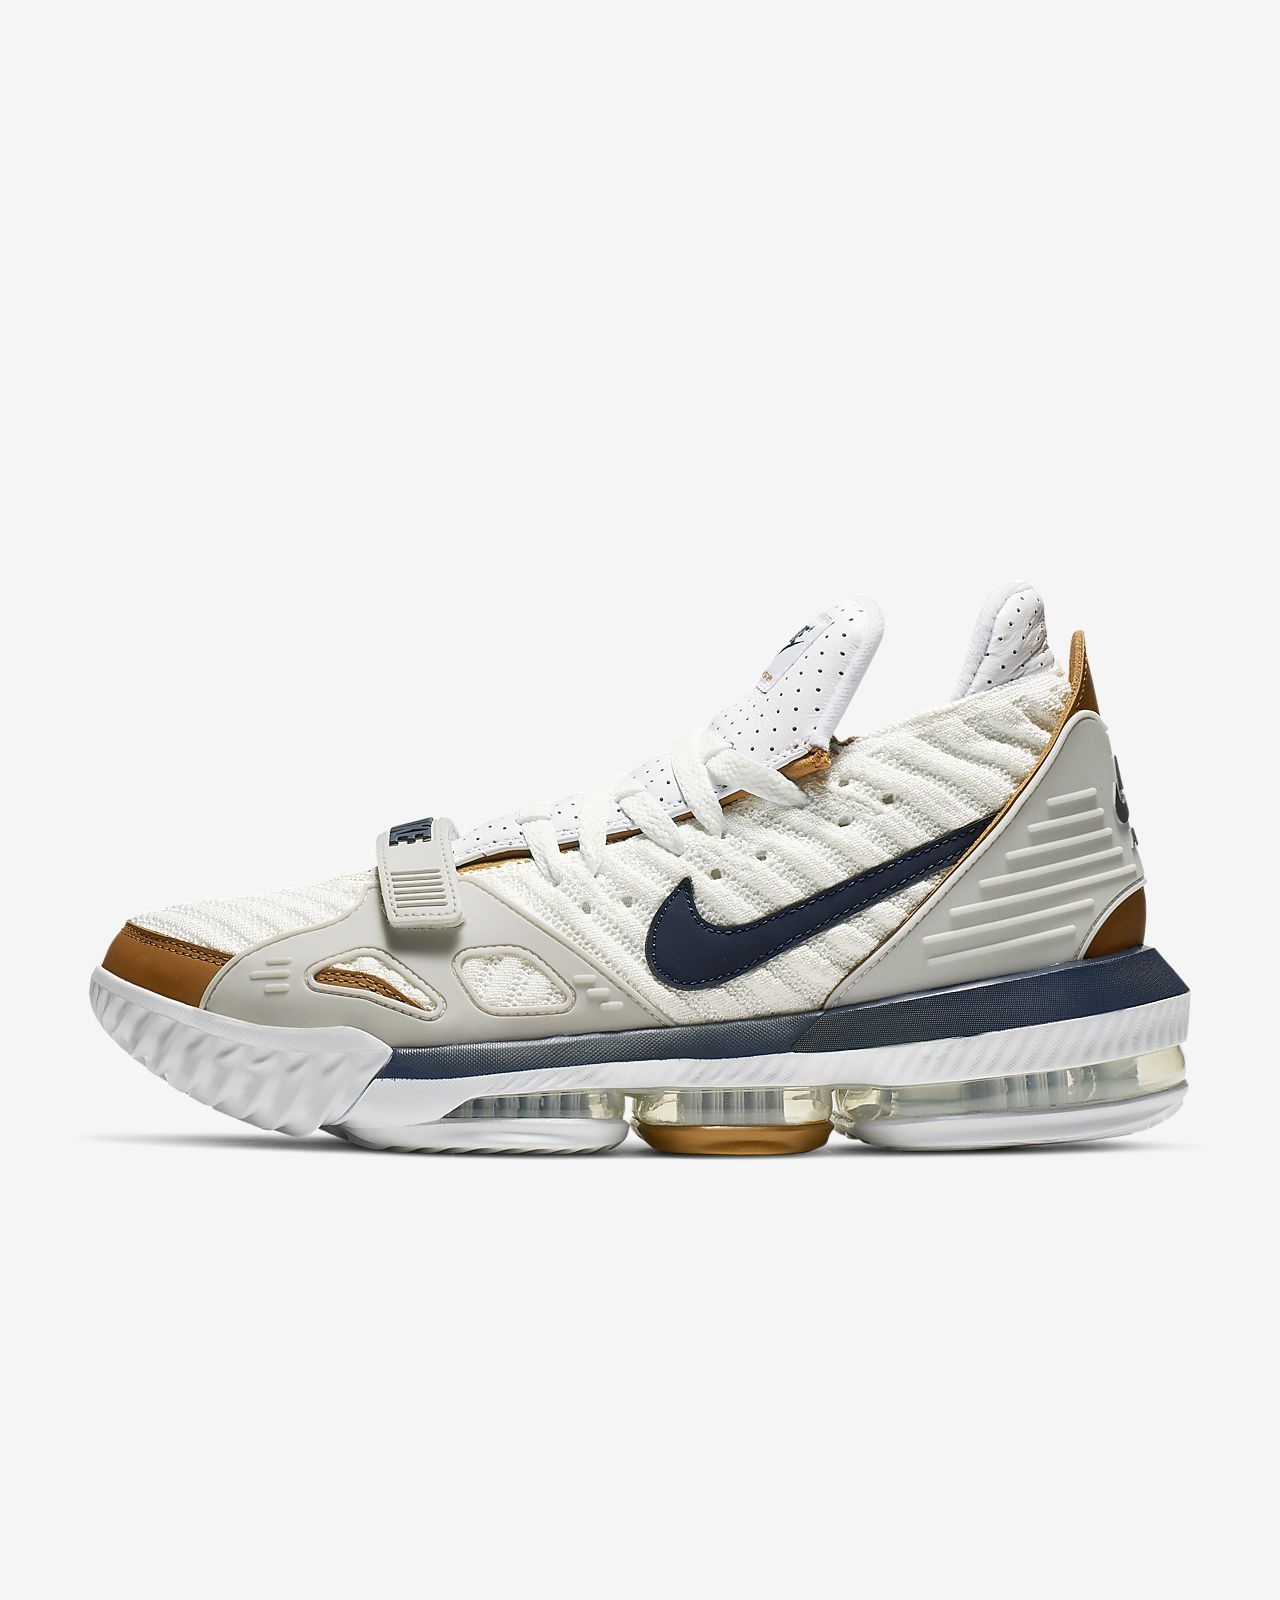 new products 9f3de 51688 Basketball Shoe. LeBron 16